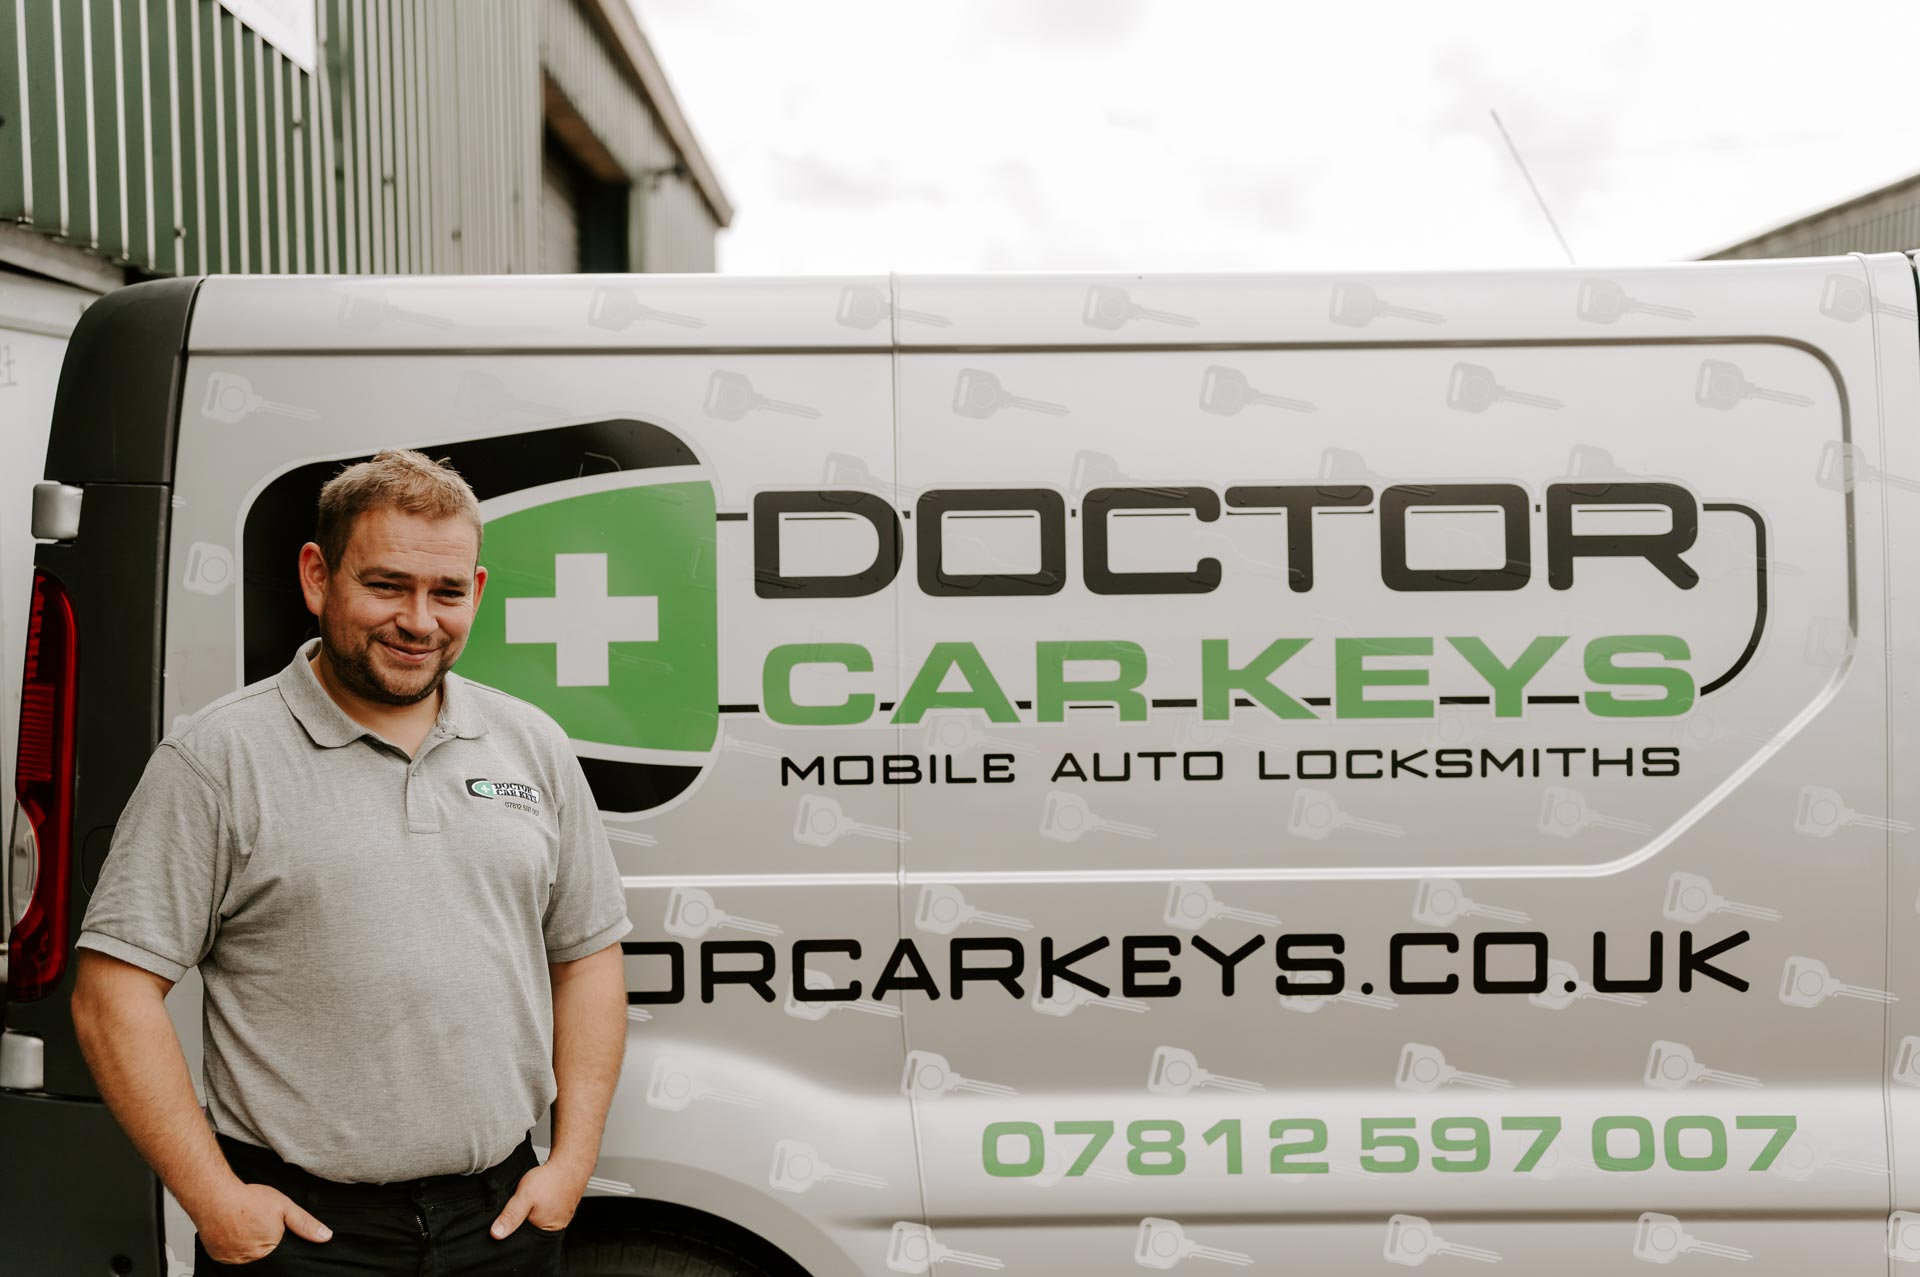 Auto Locksmiths in Crowthorne